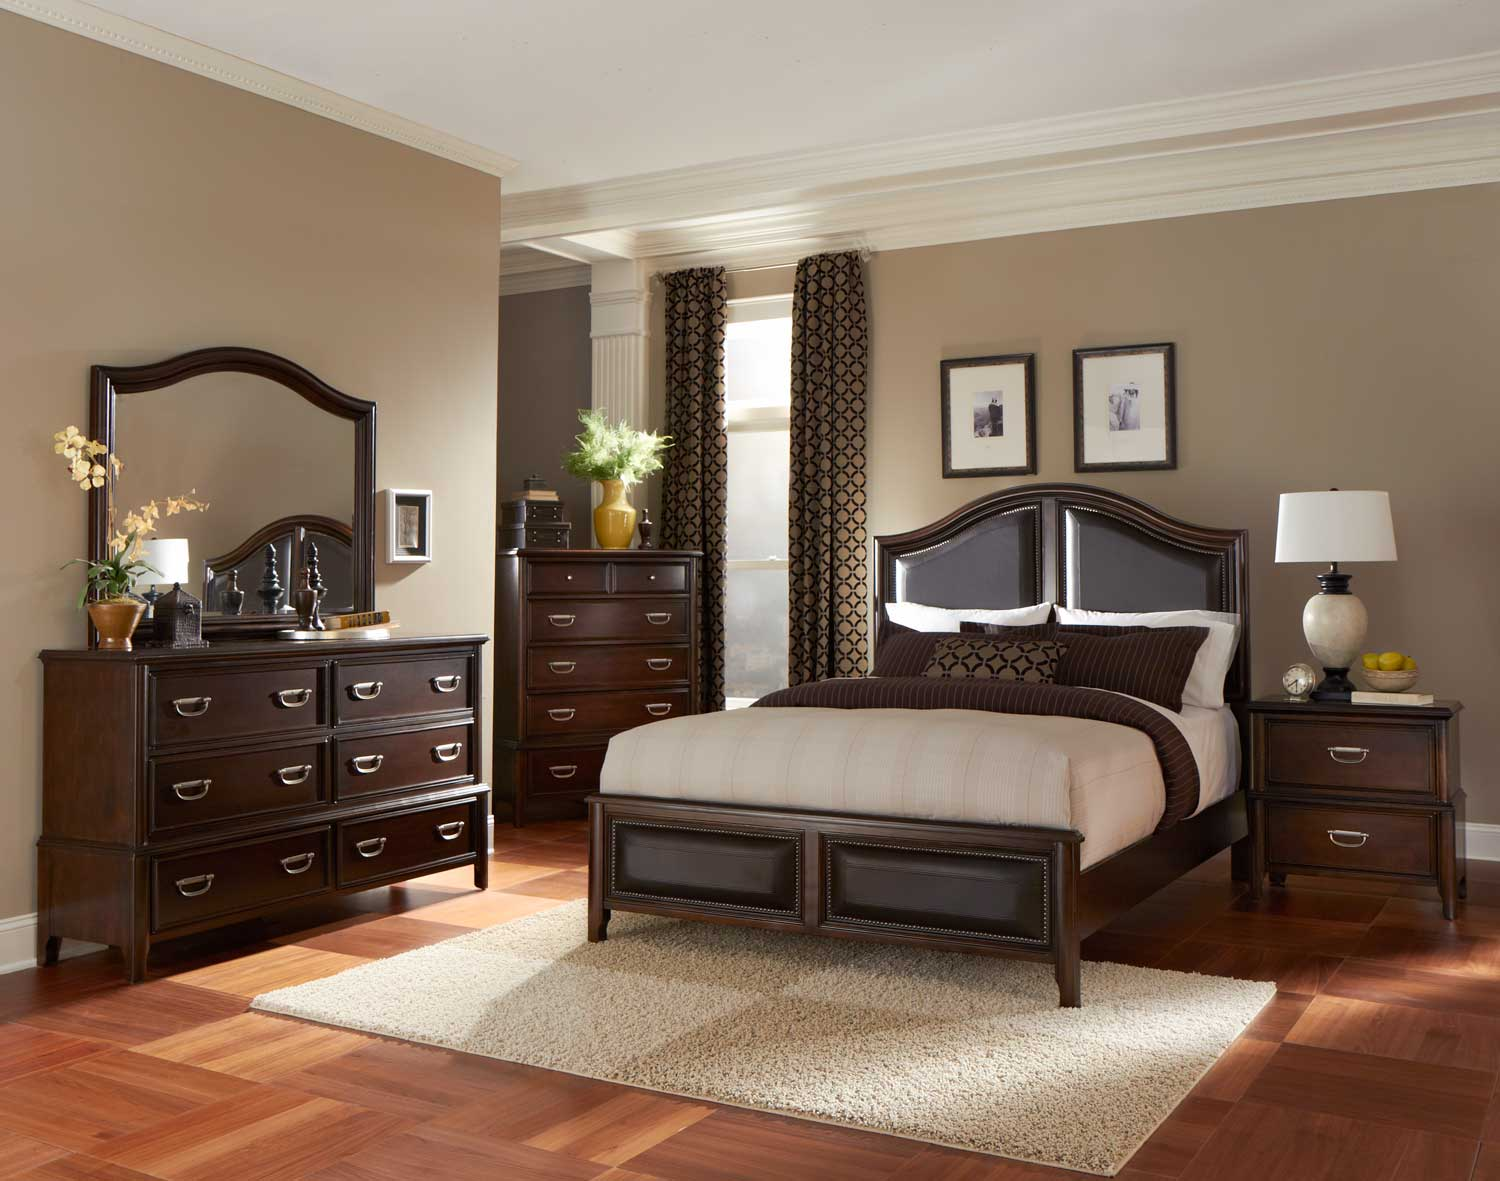 Homelegance Beaux Low Profile Bedroom Set with Vinyl Insert - Dark Cherry